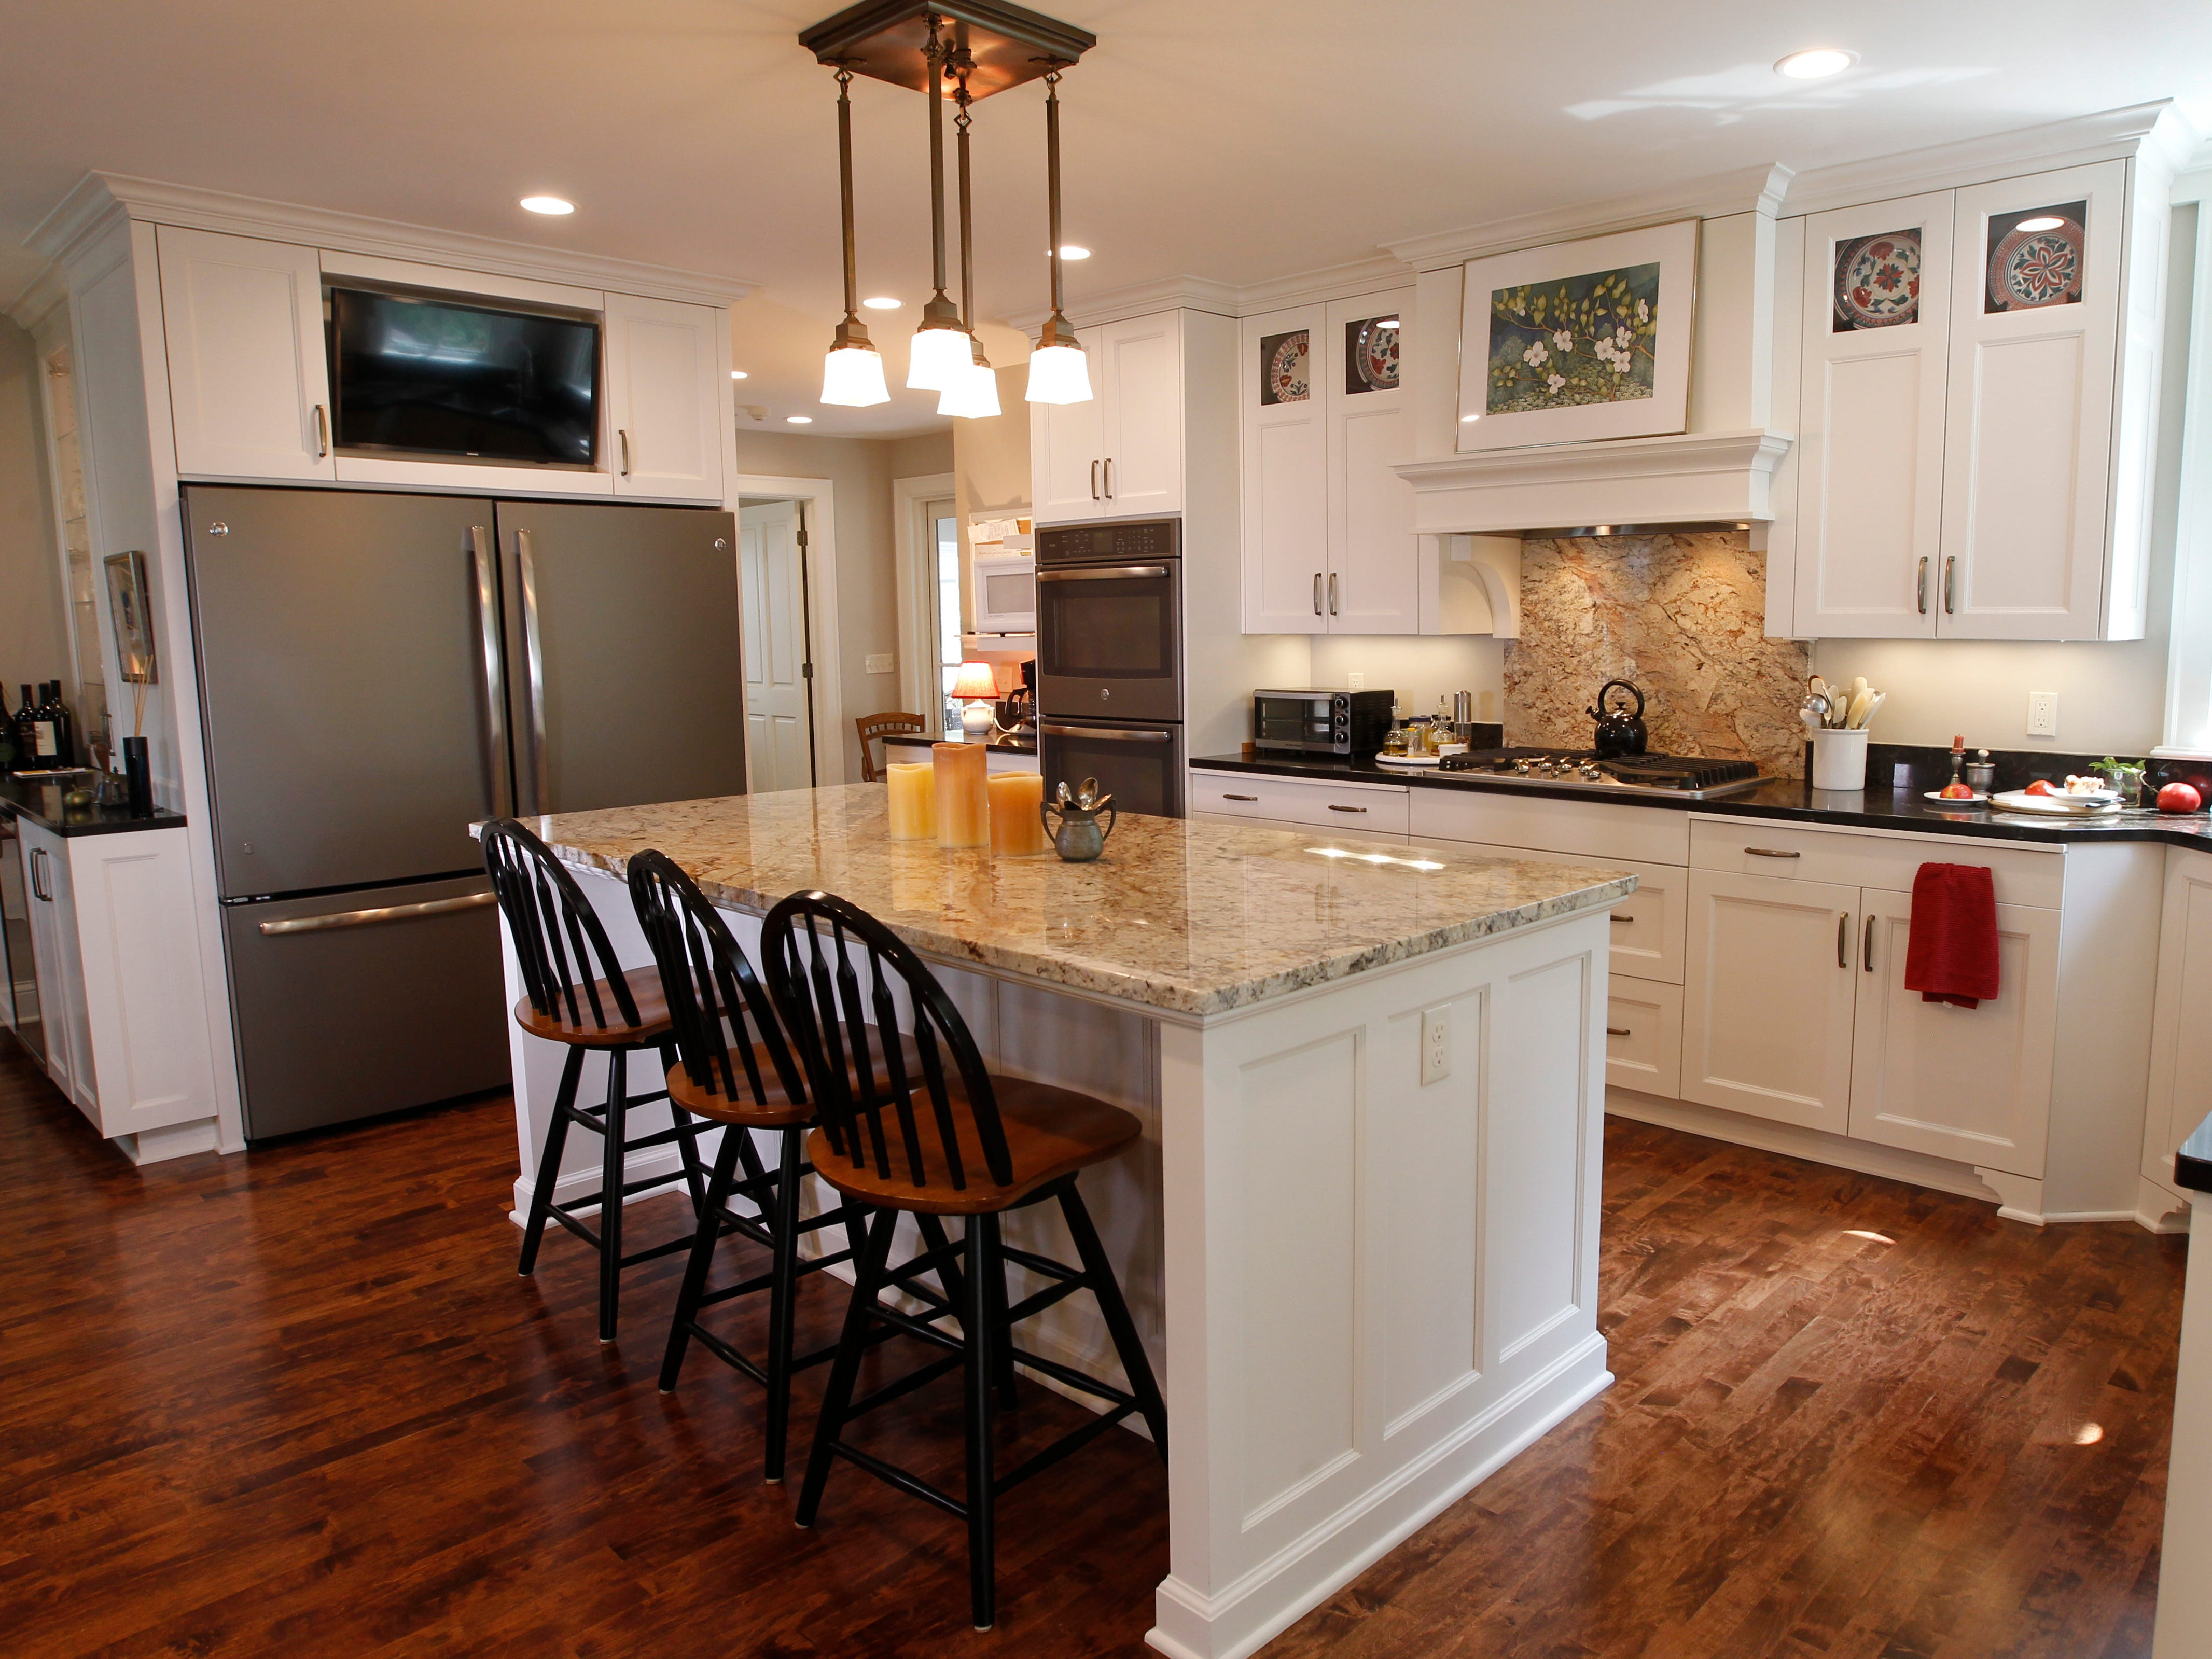 A large island was placed in the center of the kitchen with room enough for either a walker or wheelchair for better accessibility. It features separate storage areas for all three residents.